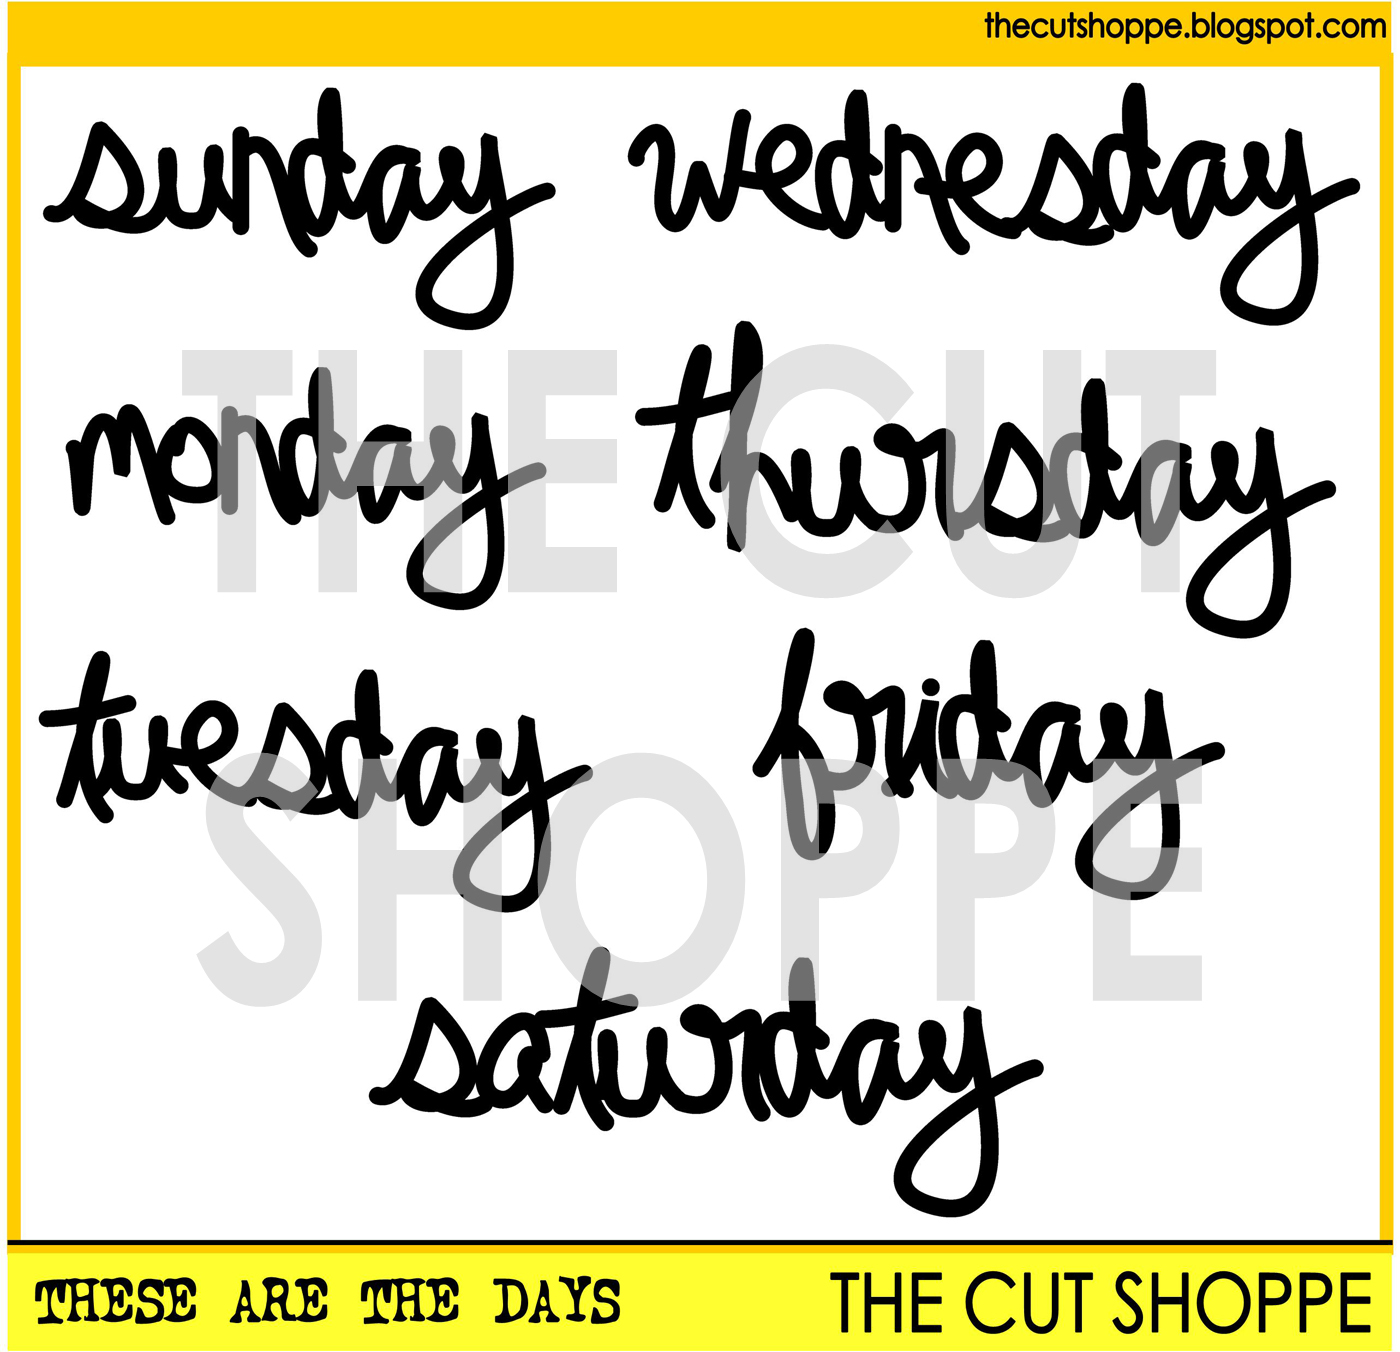 https://www.etsy.com/listing/204749221/the-these-are-the-days-cut-file-consists?ref=shop_home_active_10